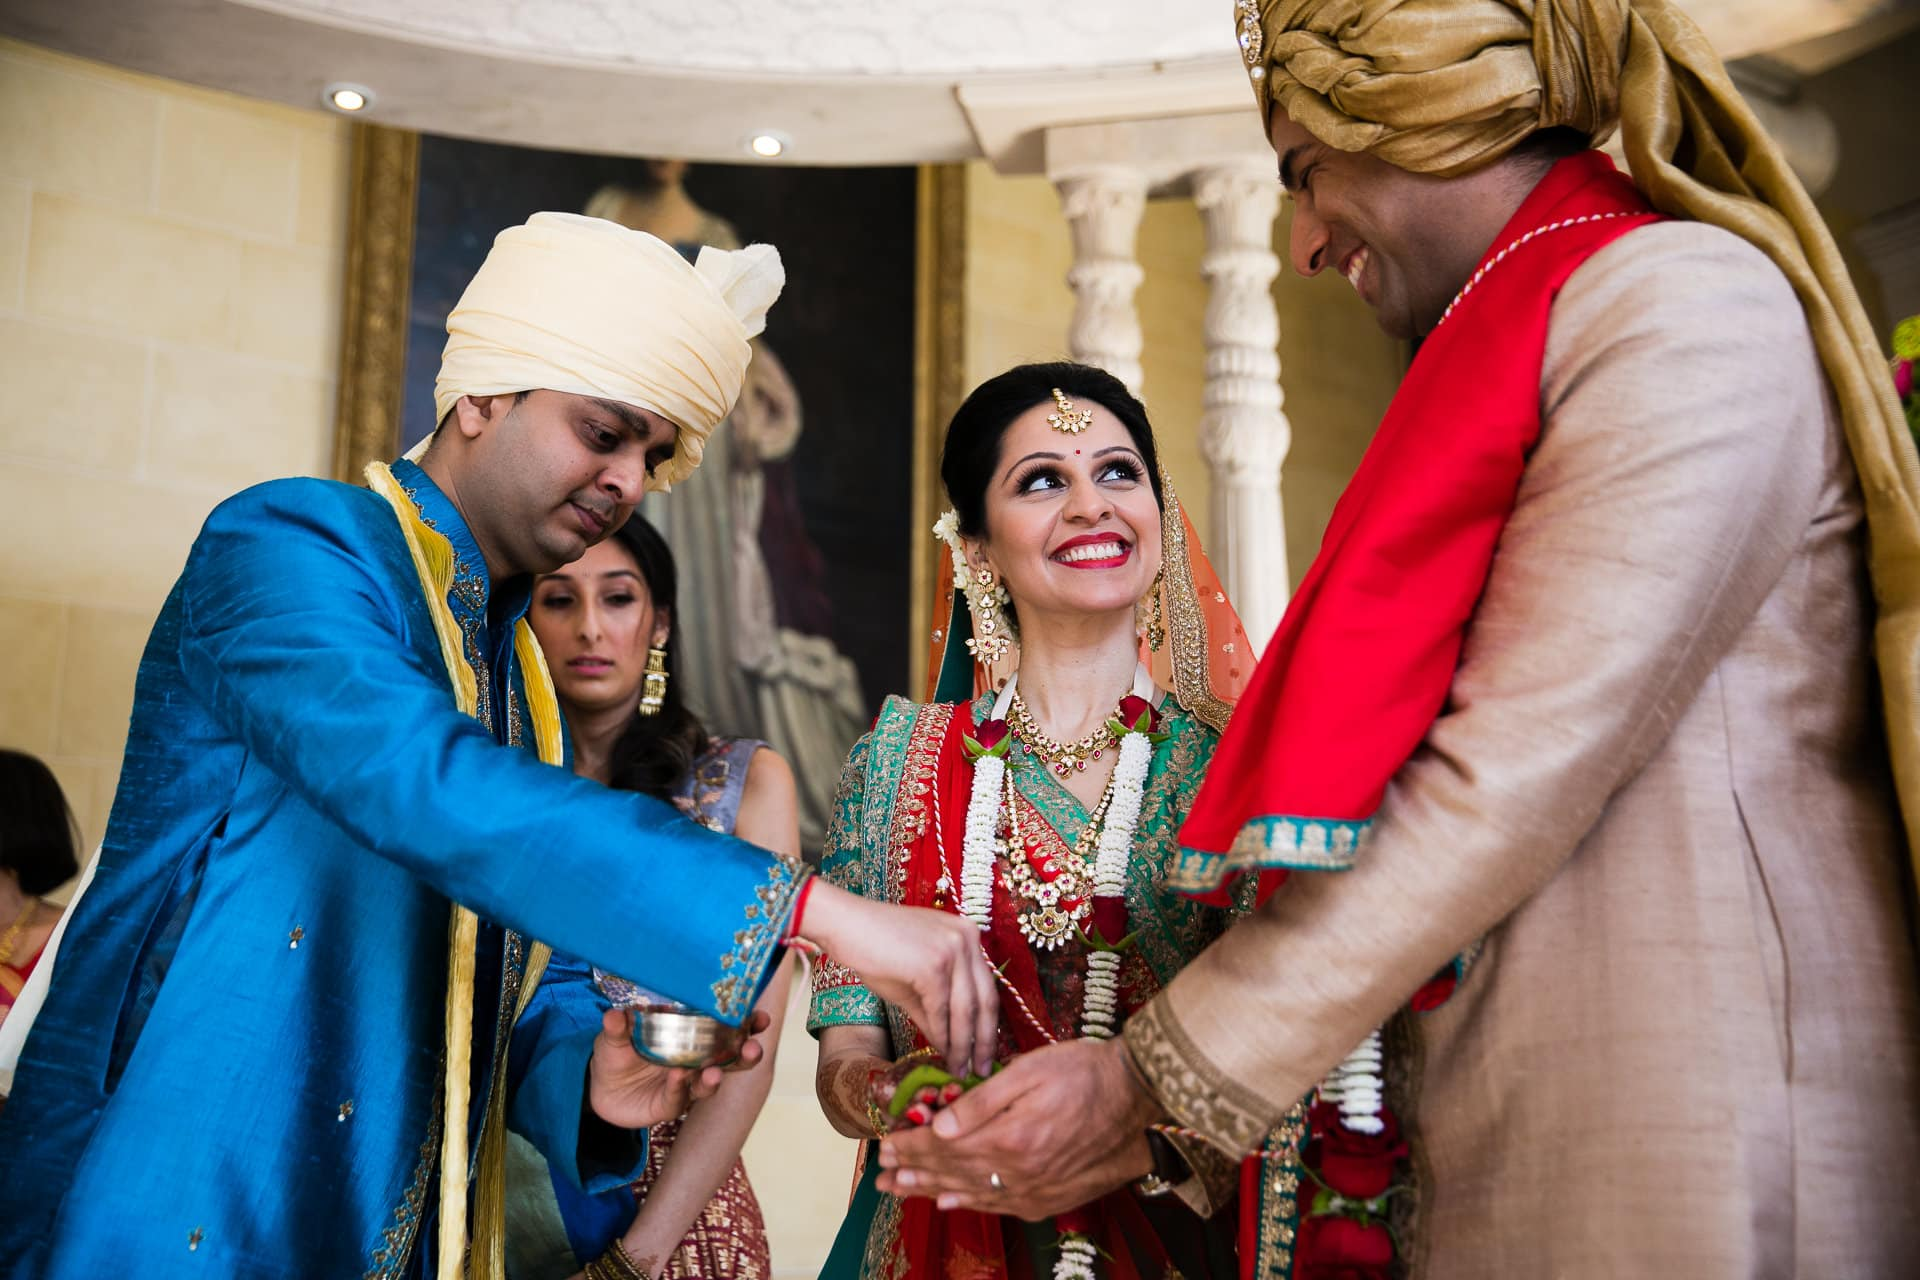 Brother of bride offering seeds to bride and groom